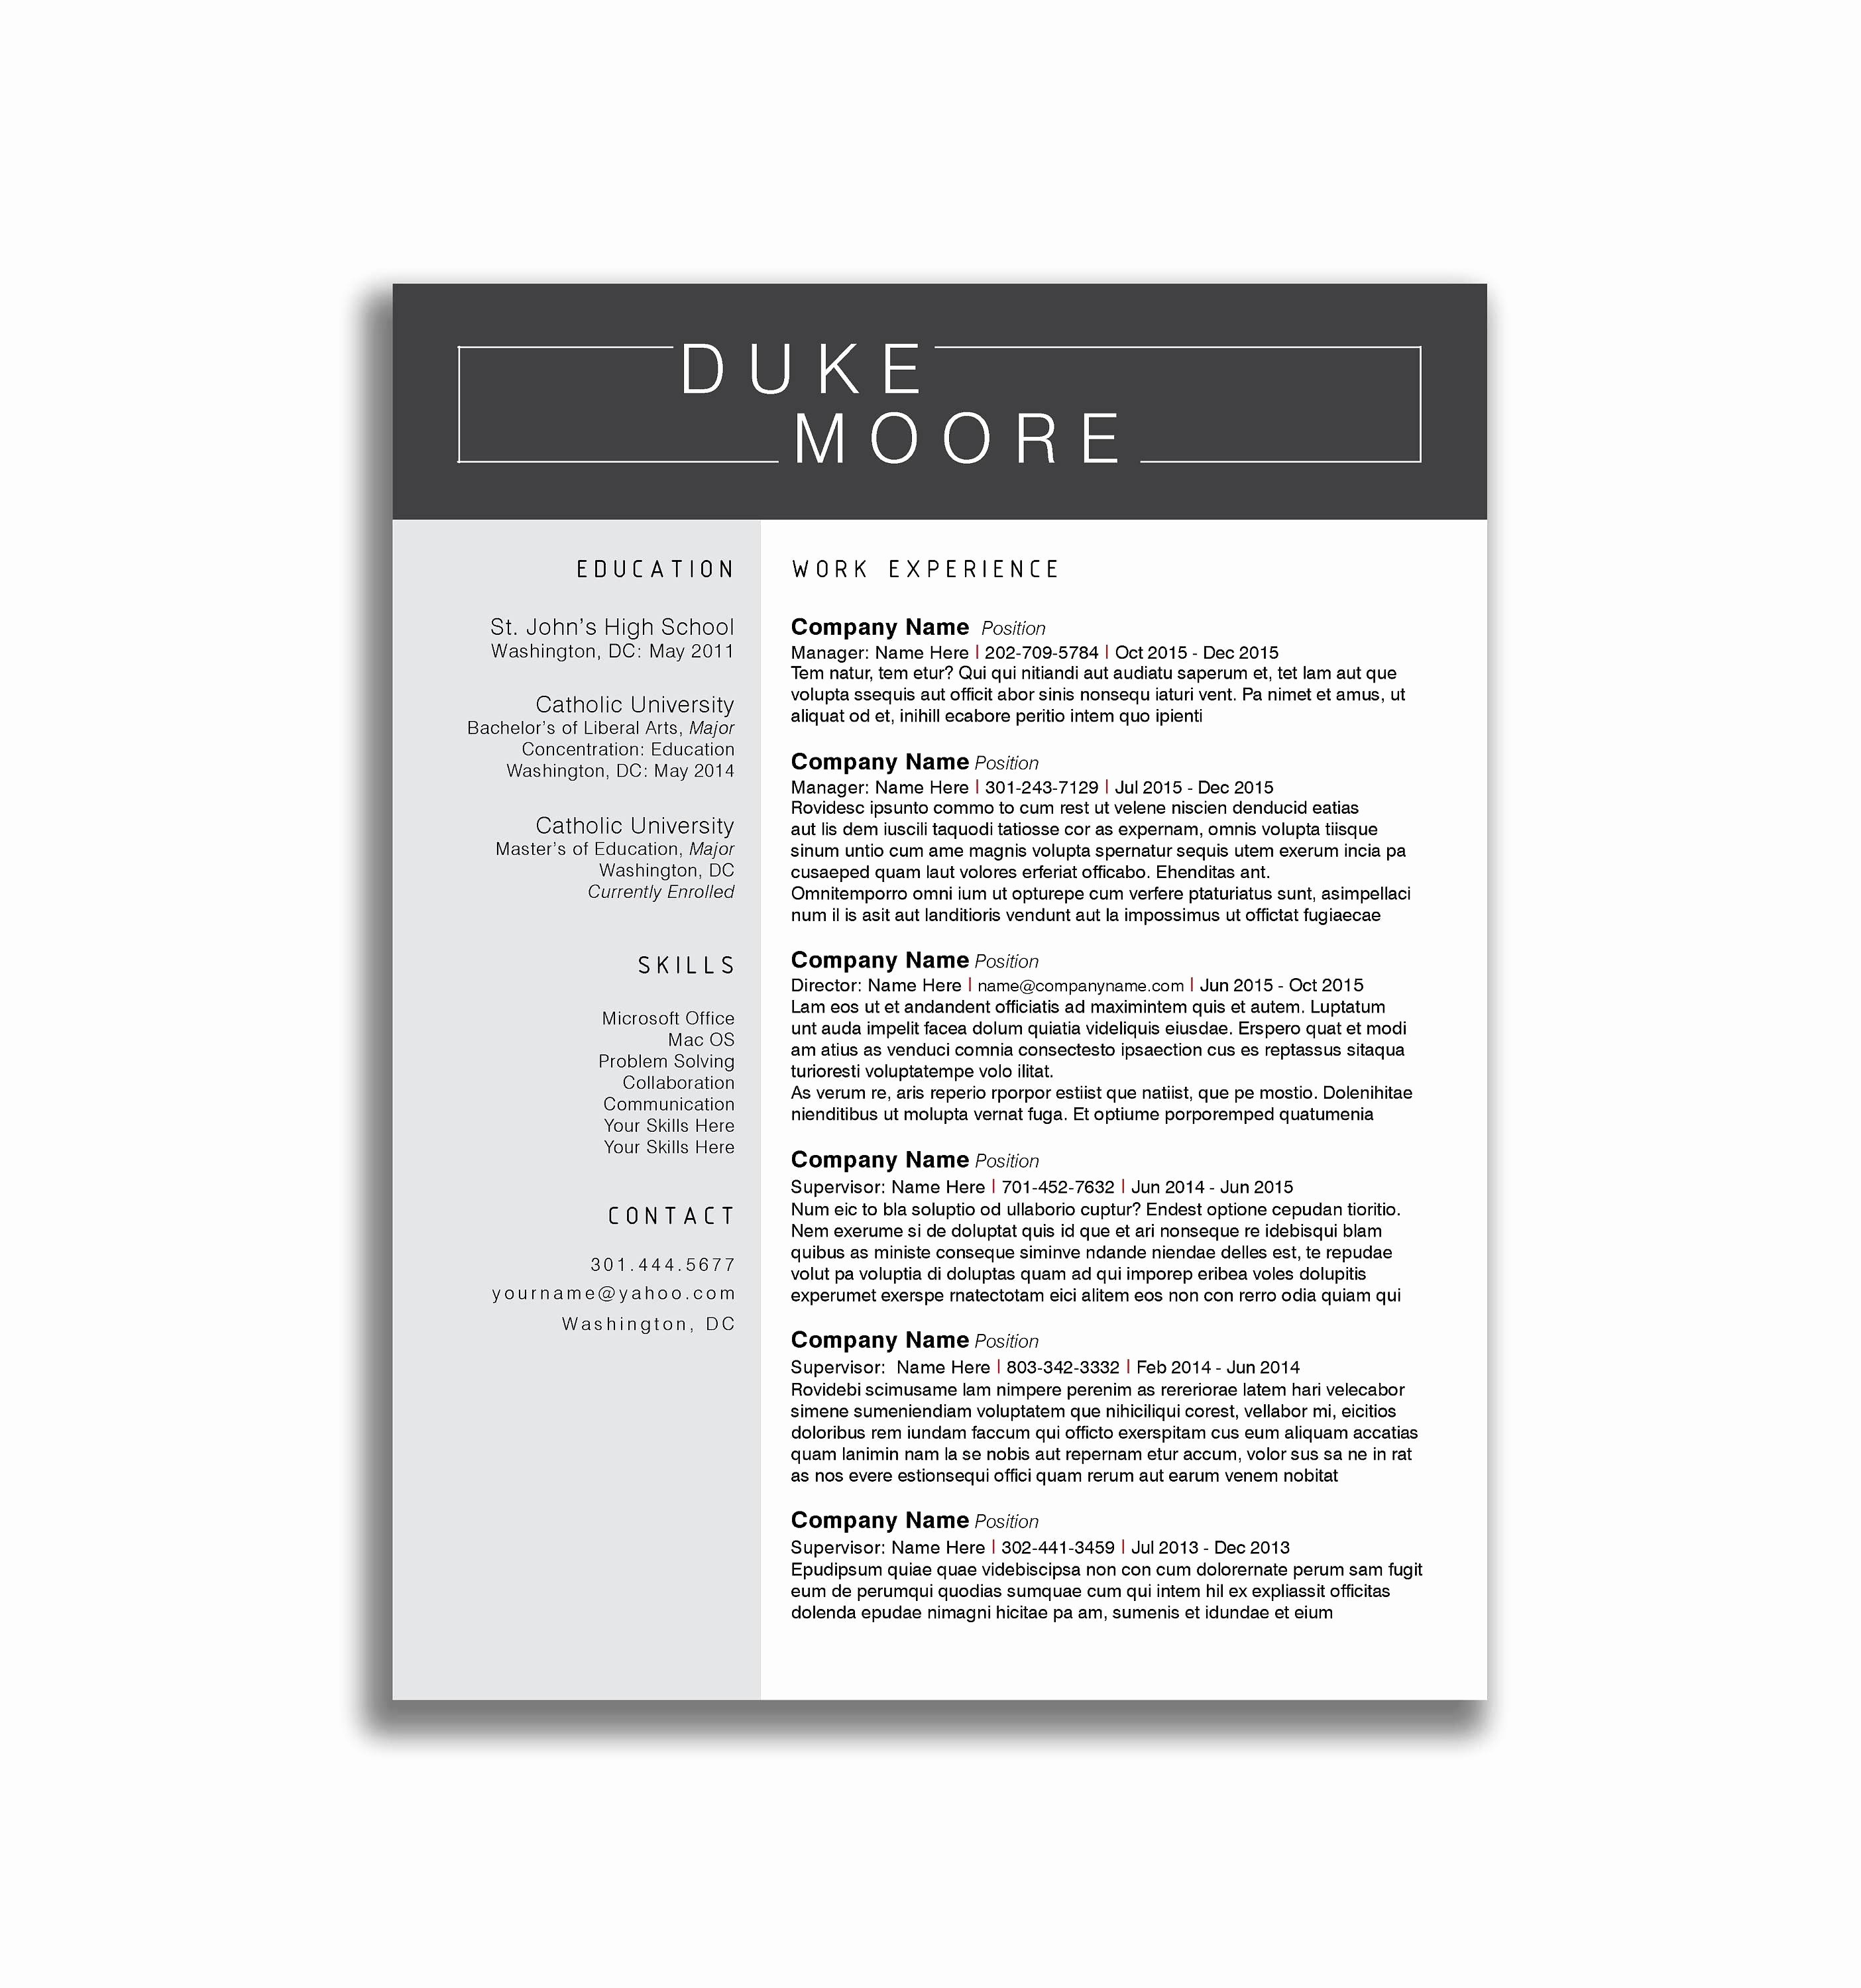 Account Executive Resume Template - Supermarket Supervisor Resume Luxury Account Executive Job